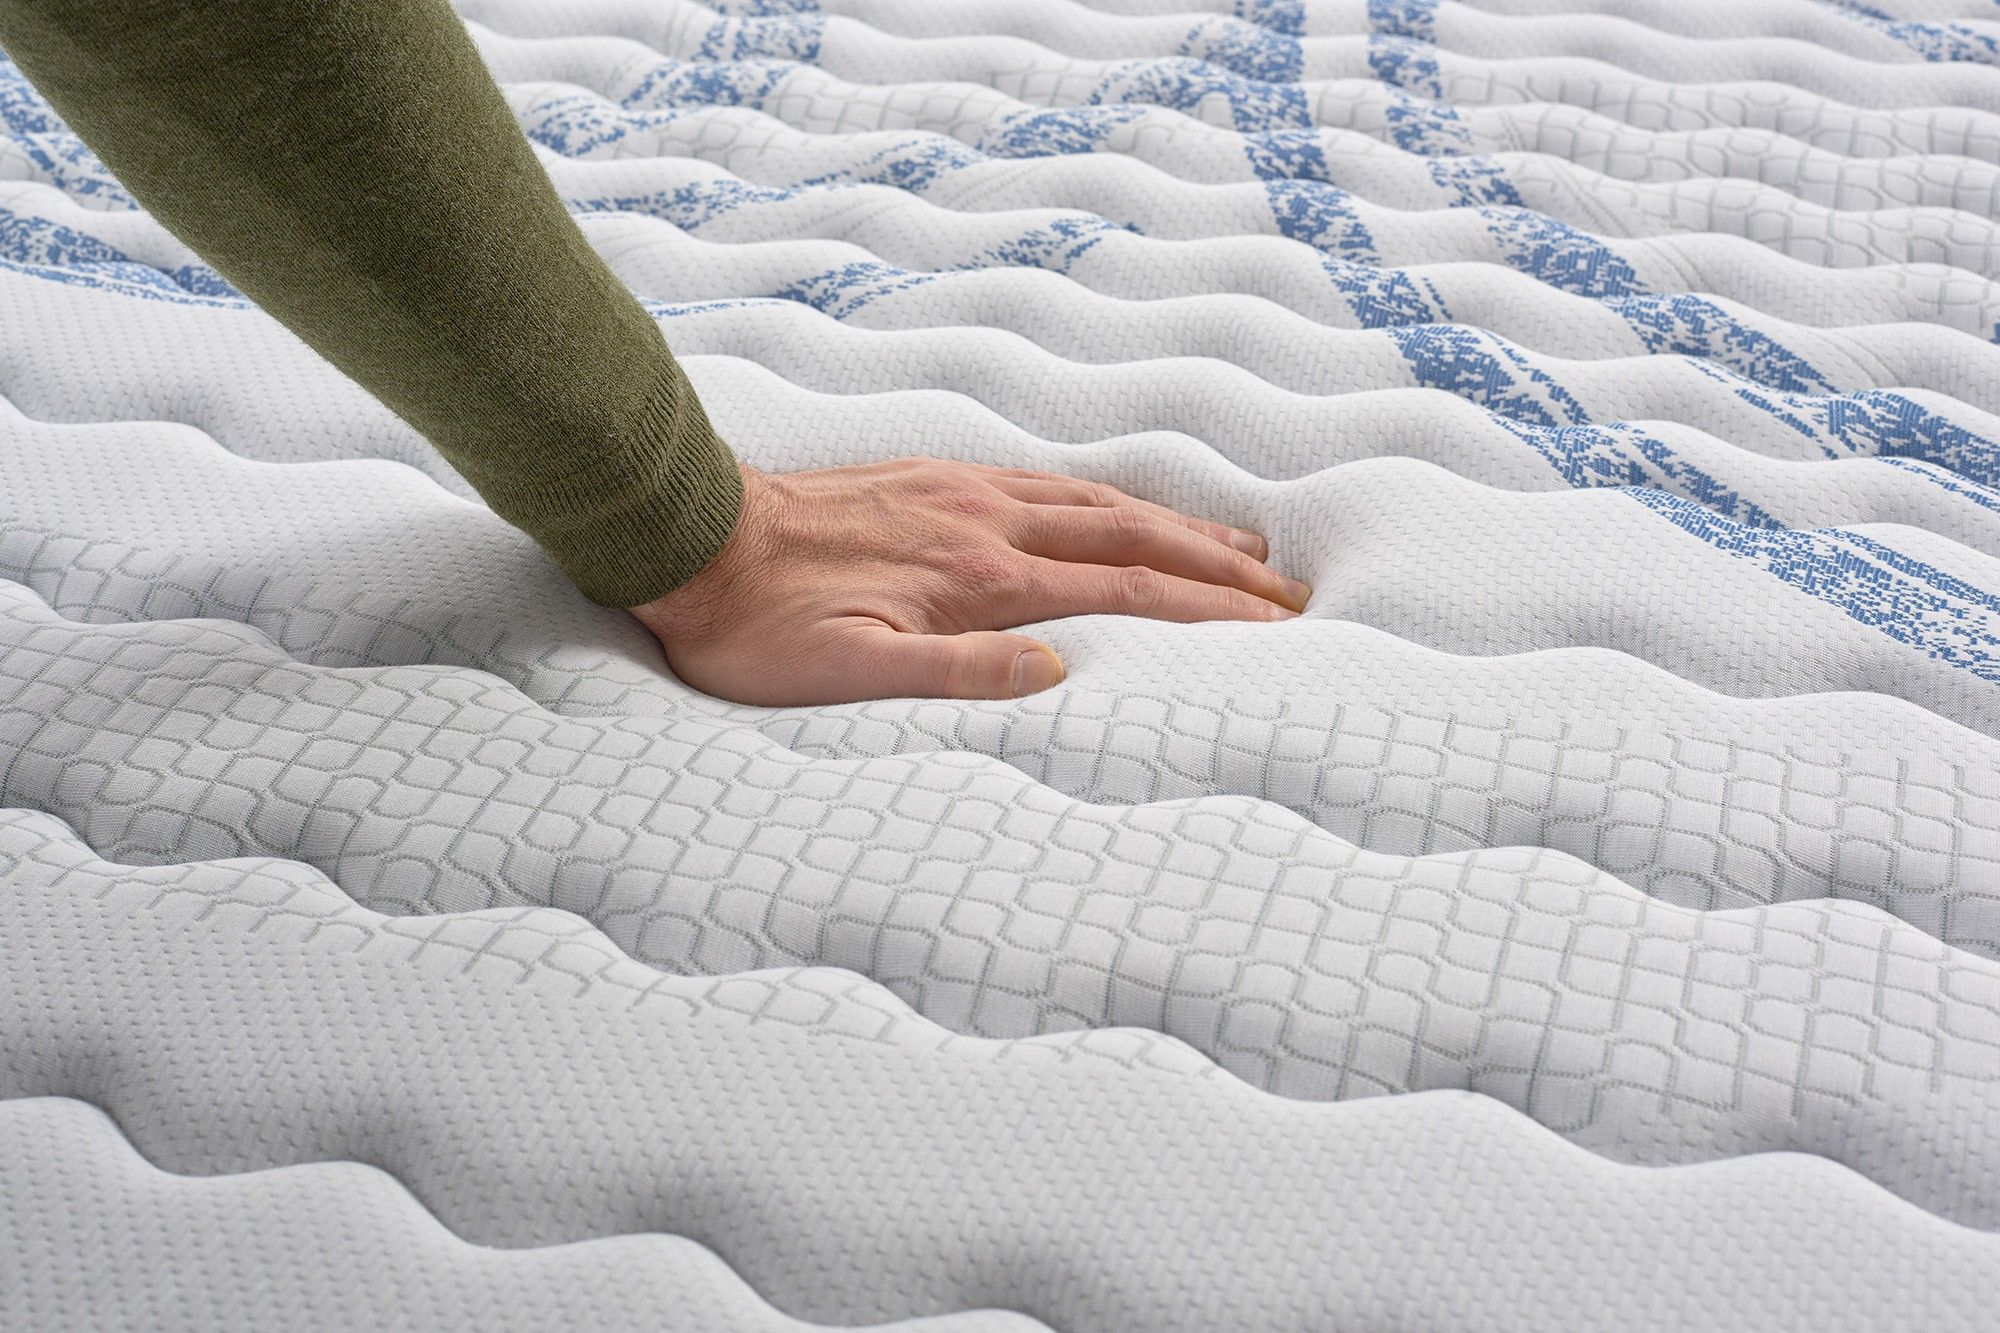 The fabrics used in the manufacture of Naturalex ® mattresses are all certified free of toxic substances by Oeko-Tex ®